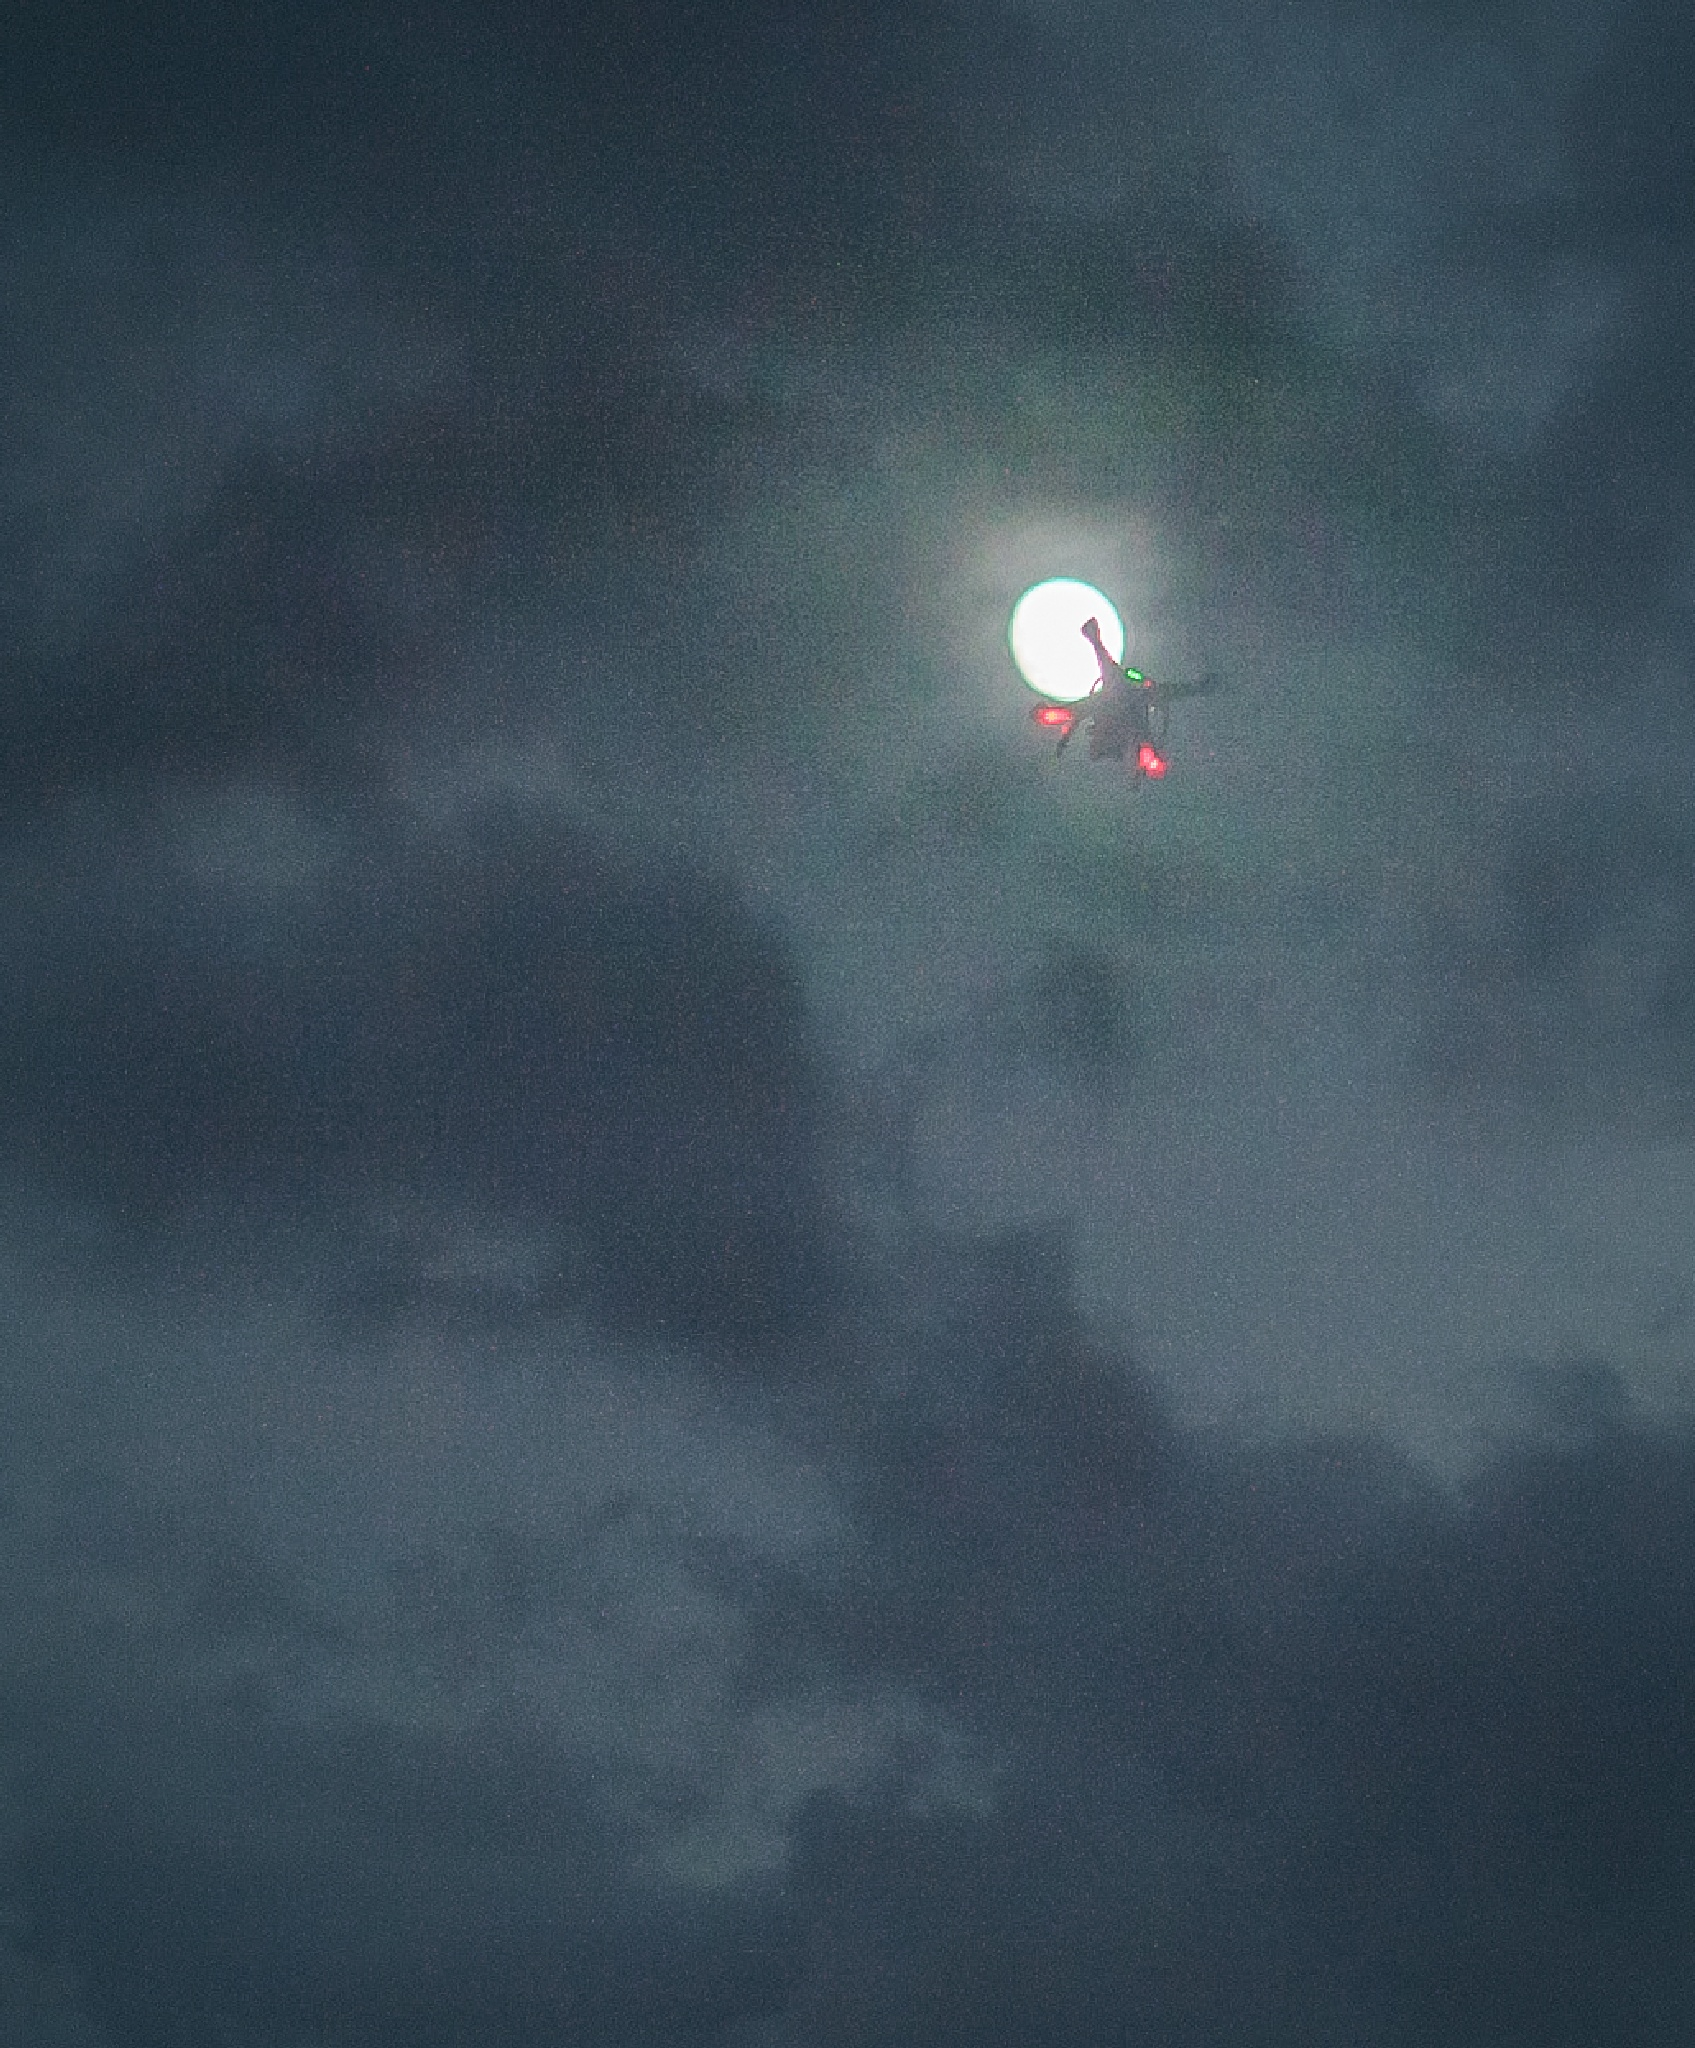 Drone, Moon, Winds, and Rains by blueskyoveraquatic